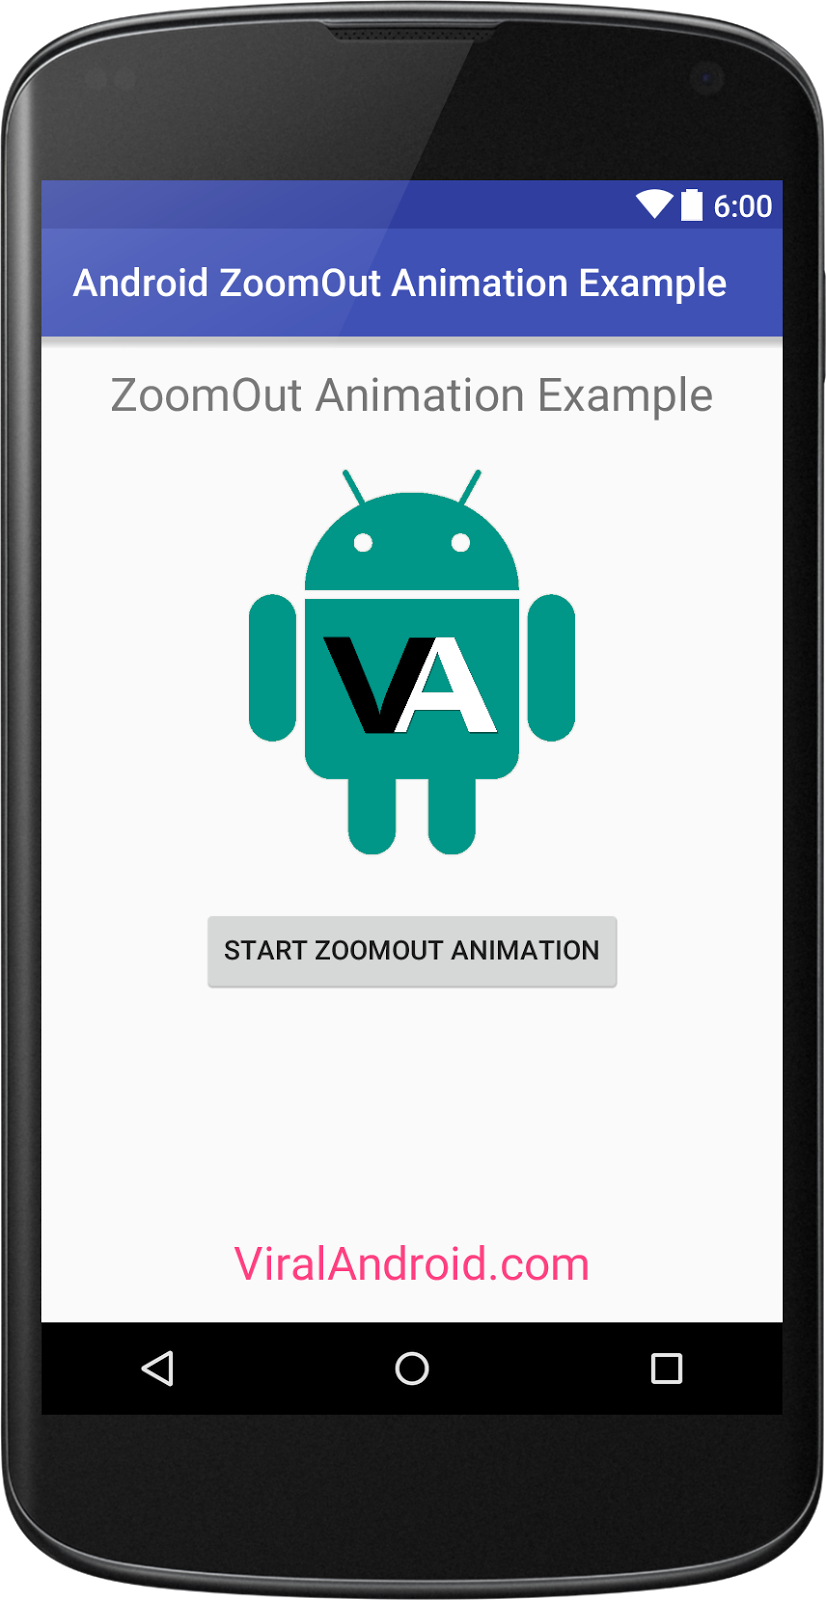 android-zoom-out-animation-example Xamarin Layout Forms Examples on master-detail tablet, identification card, title description stack, gradient stack, android tabs, forms floating button absolute, app header,